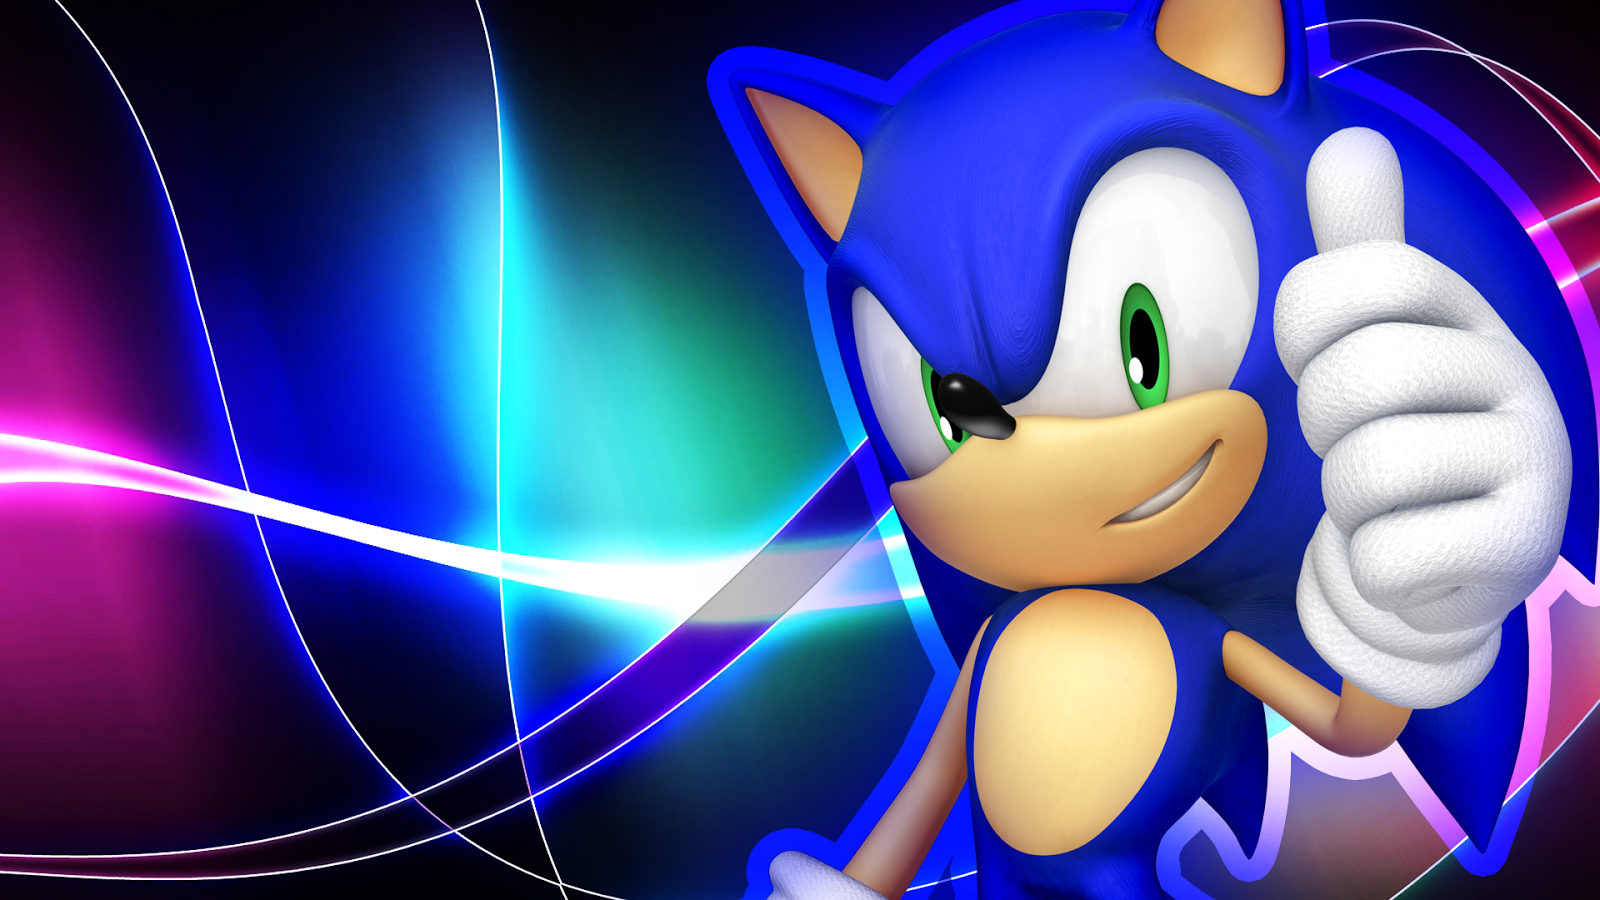 wallpaper sonic blue - photo #20